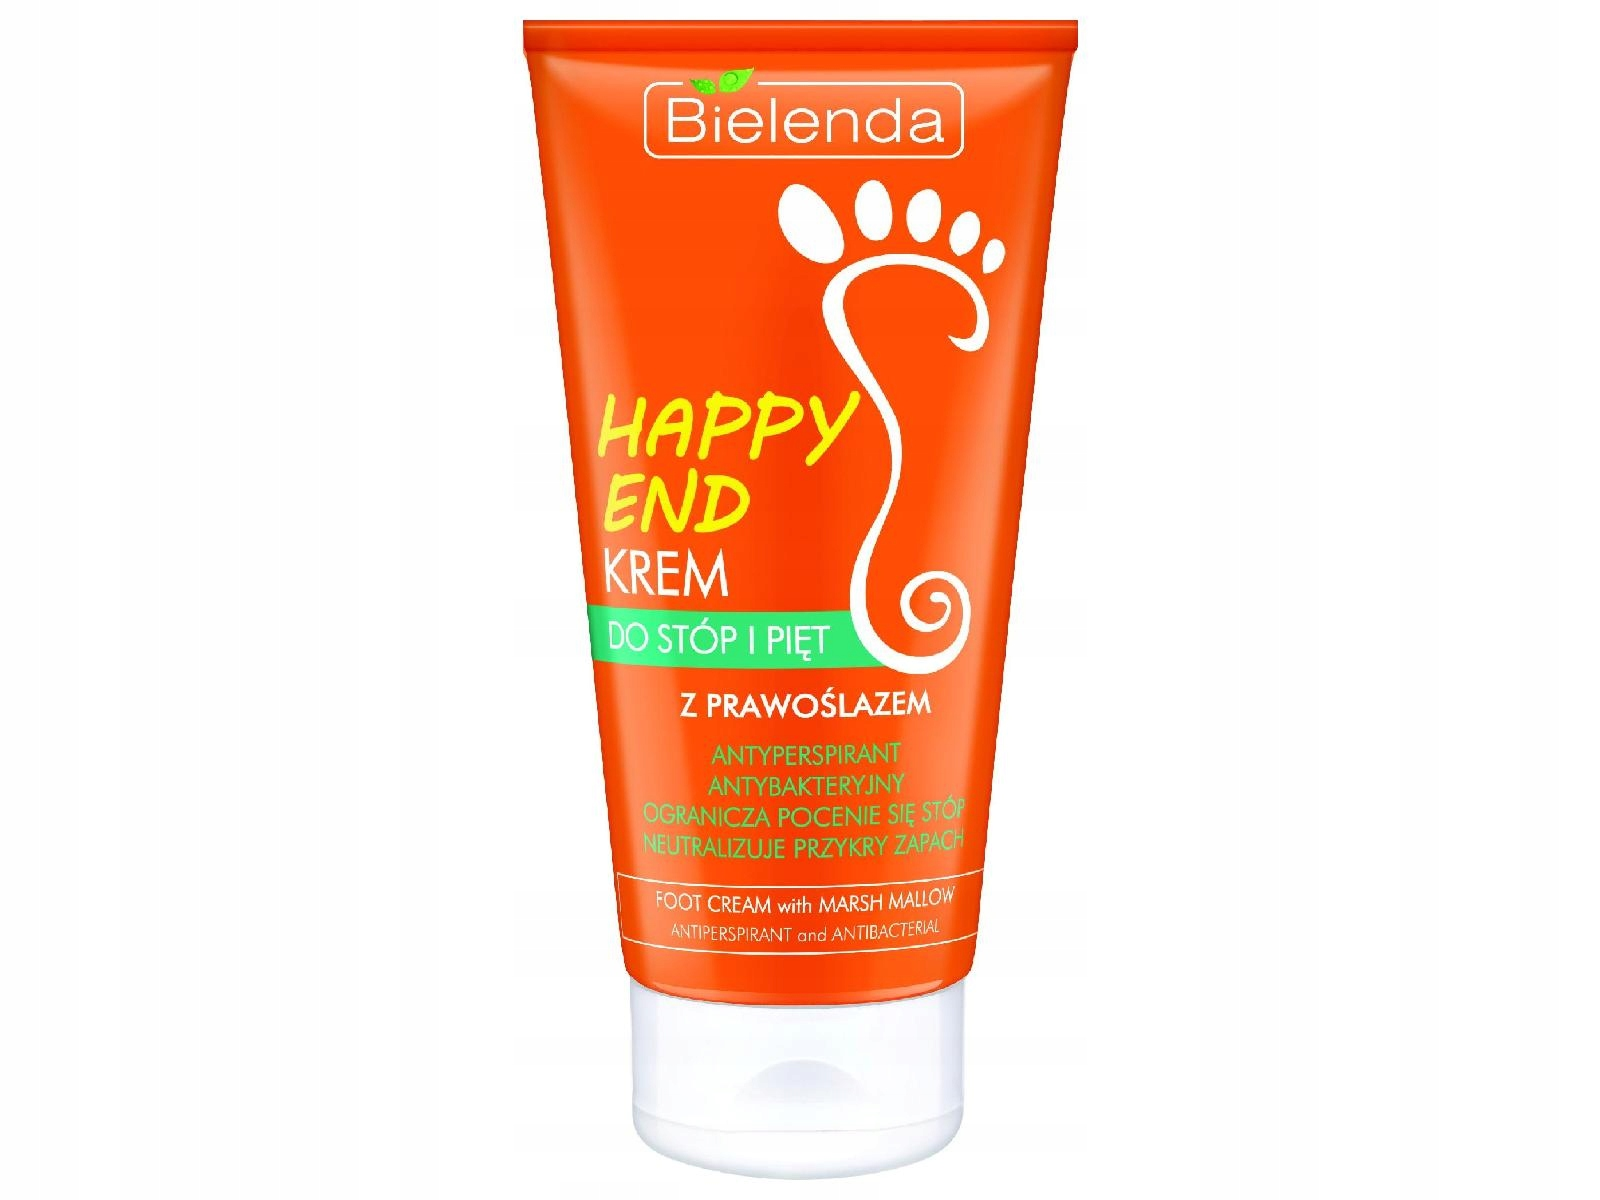 Bielenda Happy End Krem do stóp i pięt z 125ml